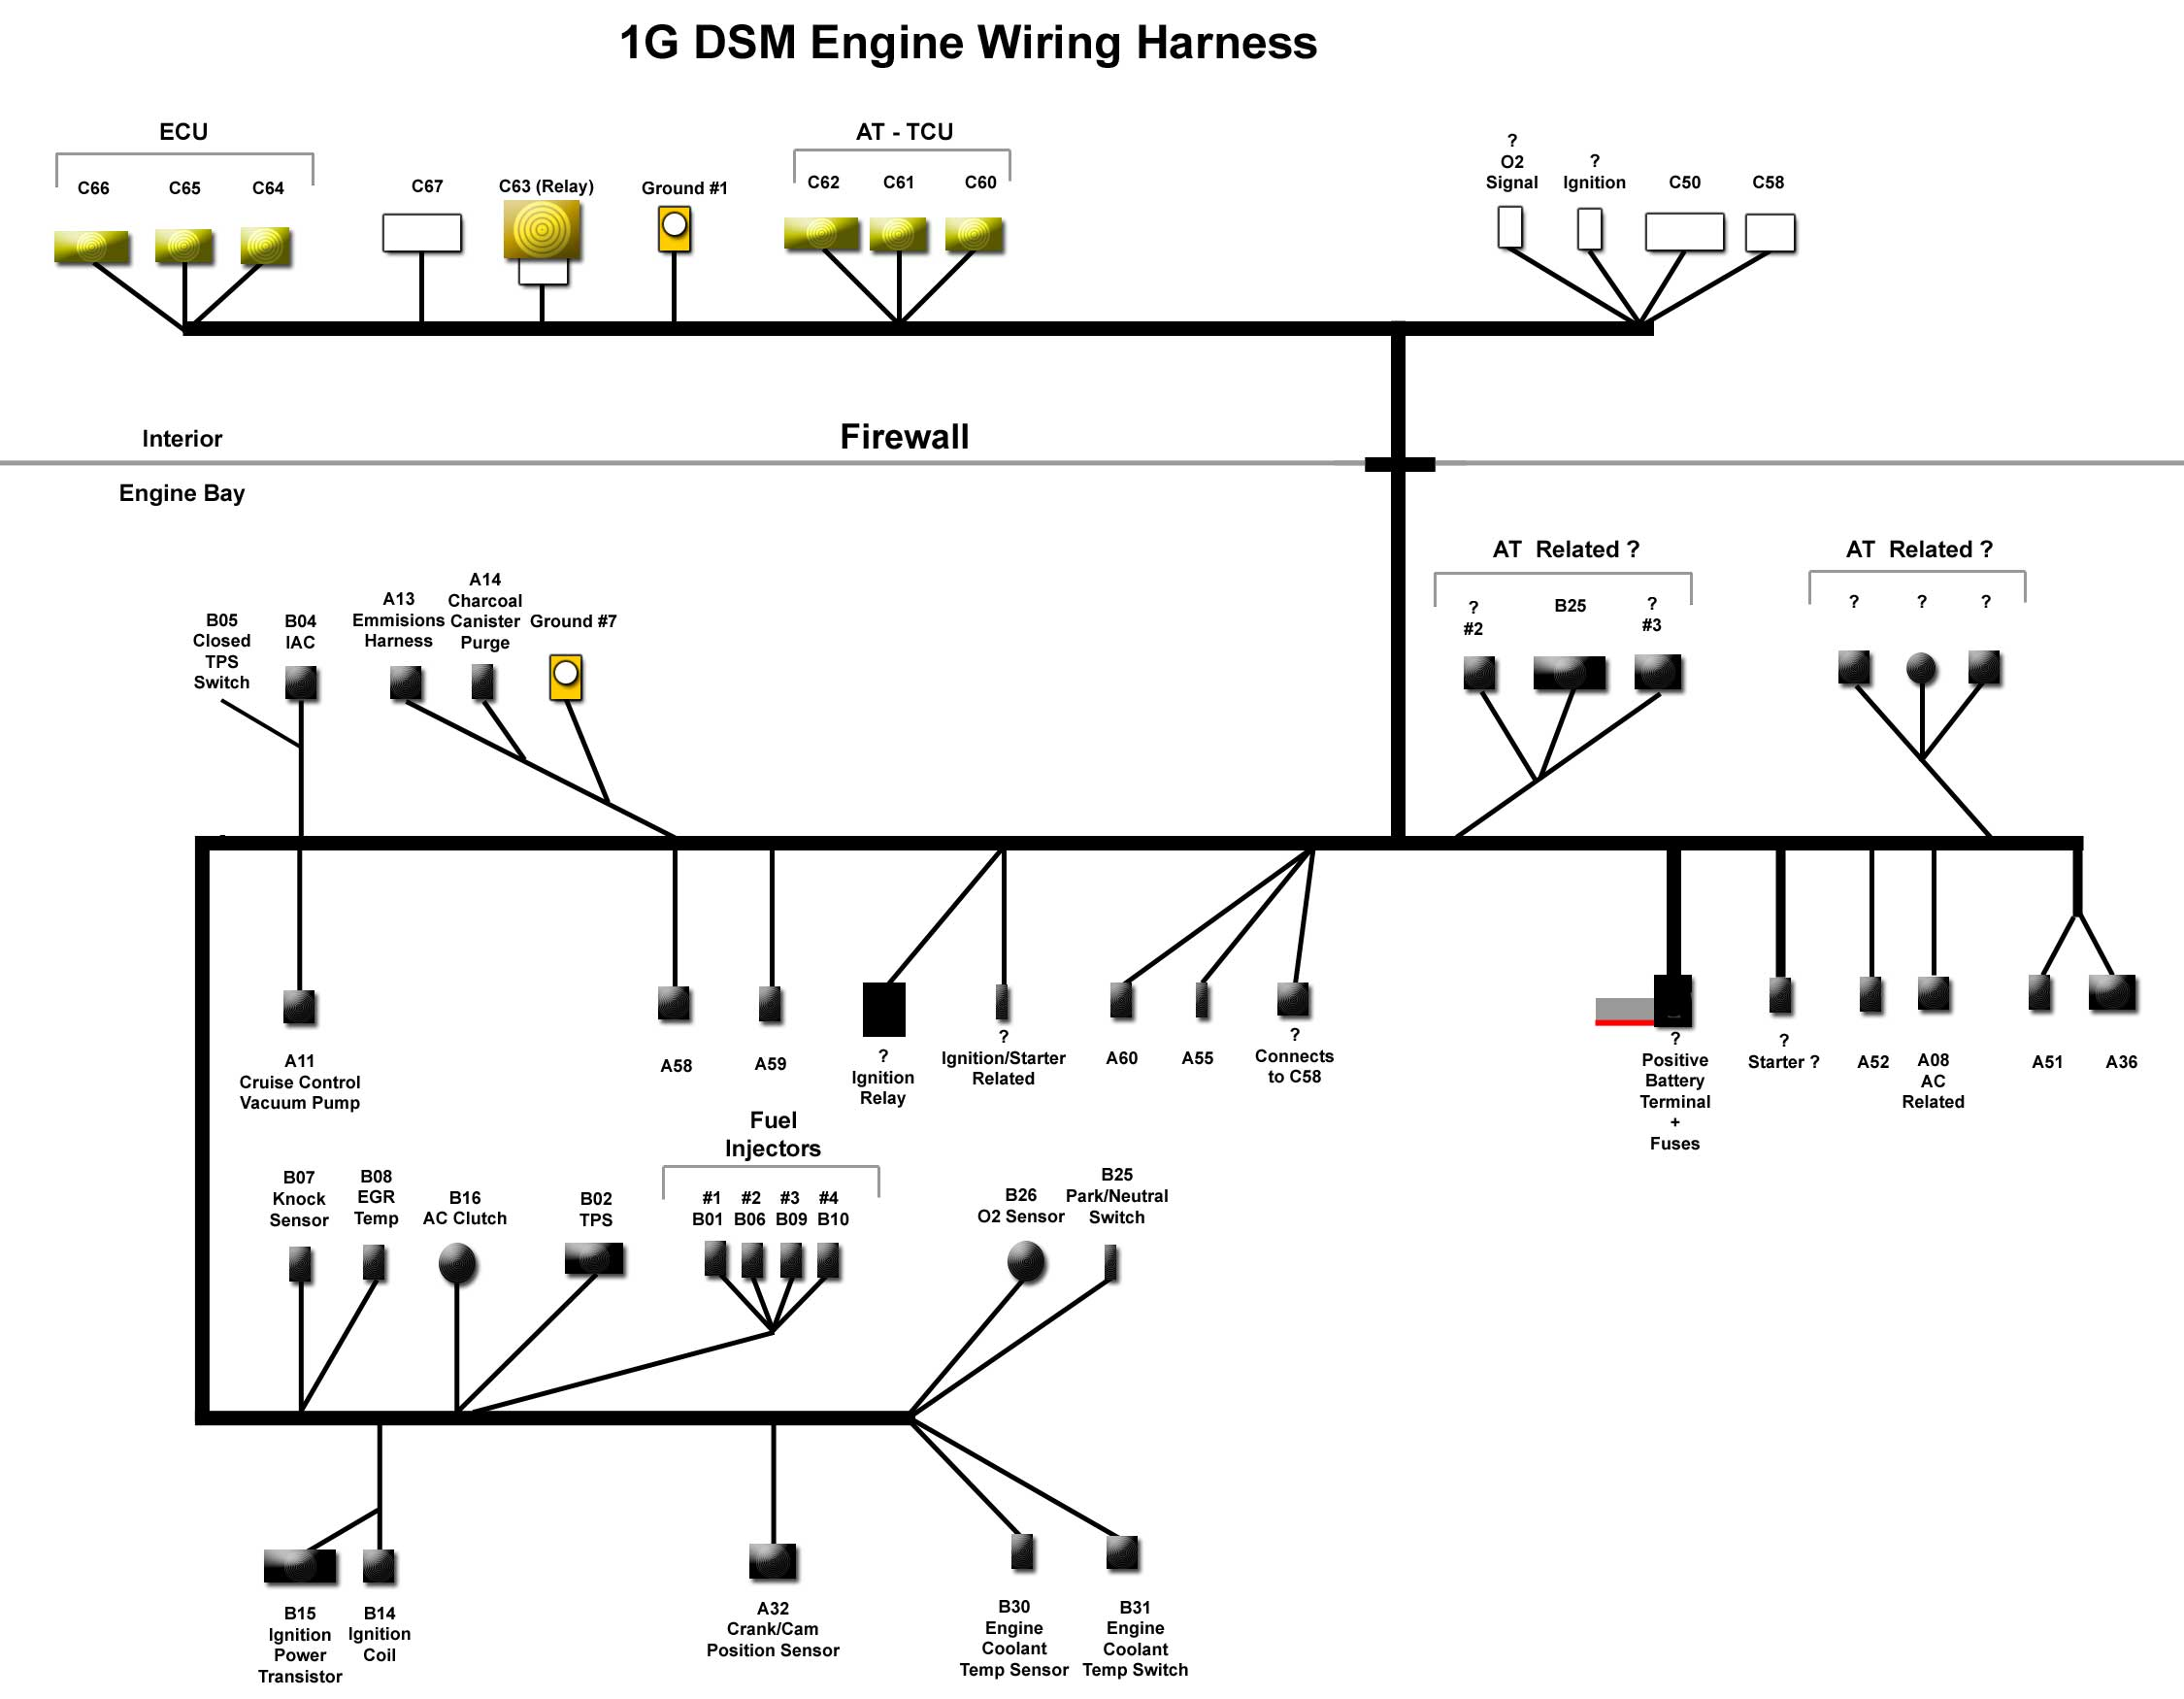 1G DSM EngineHarness 1gb dsm 4g63 turbo wiring harness diagram wiring harness diagram at love-stories.co